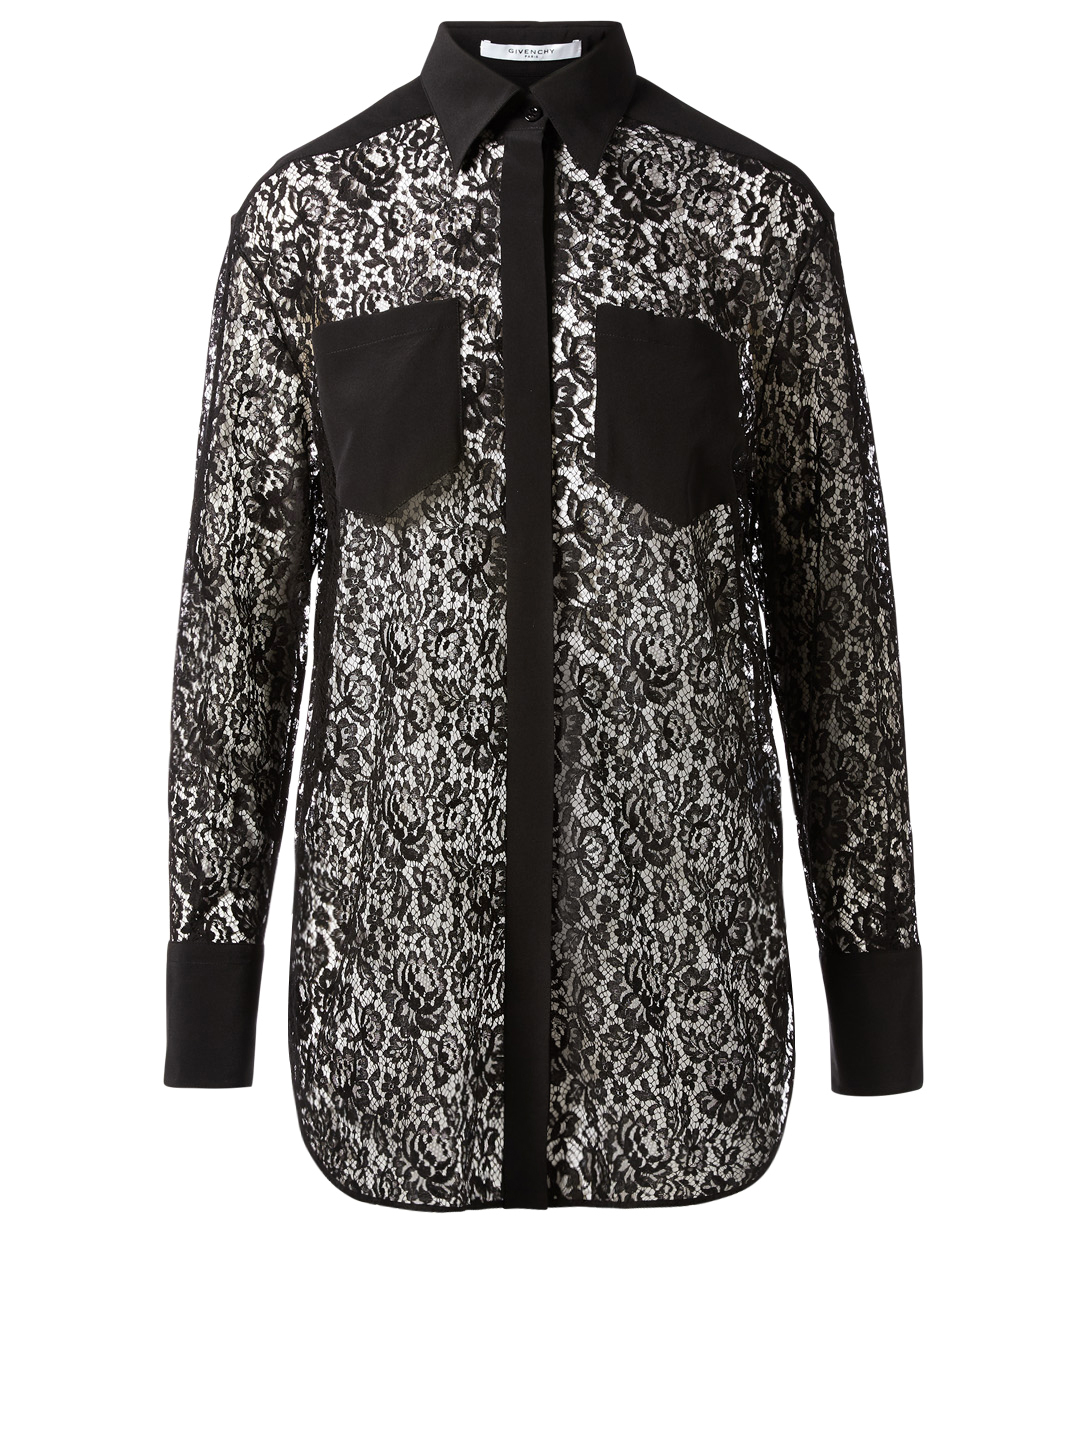 GIVENCHY Lace Button-Up Blouse Women's Black